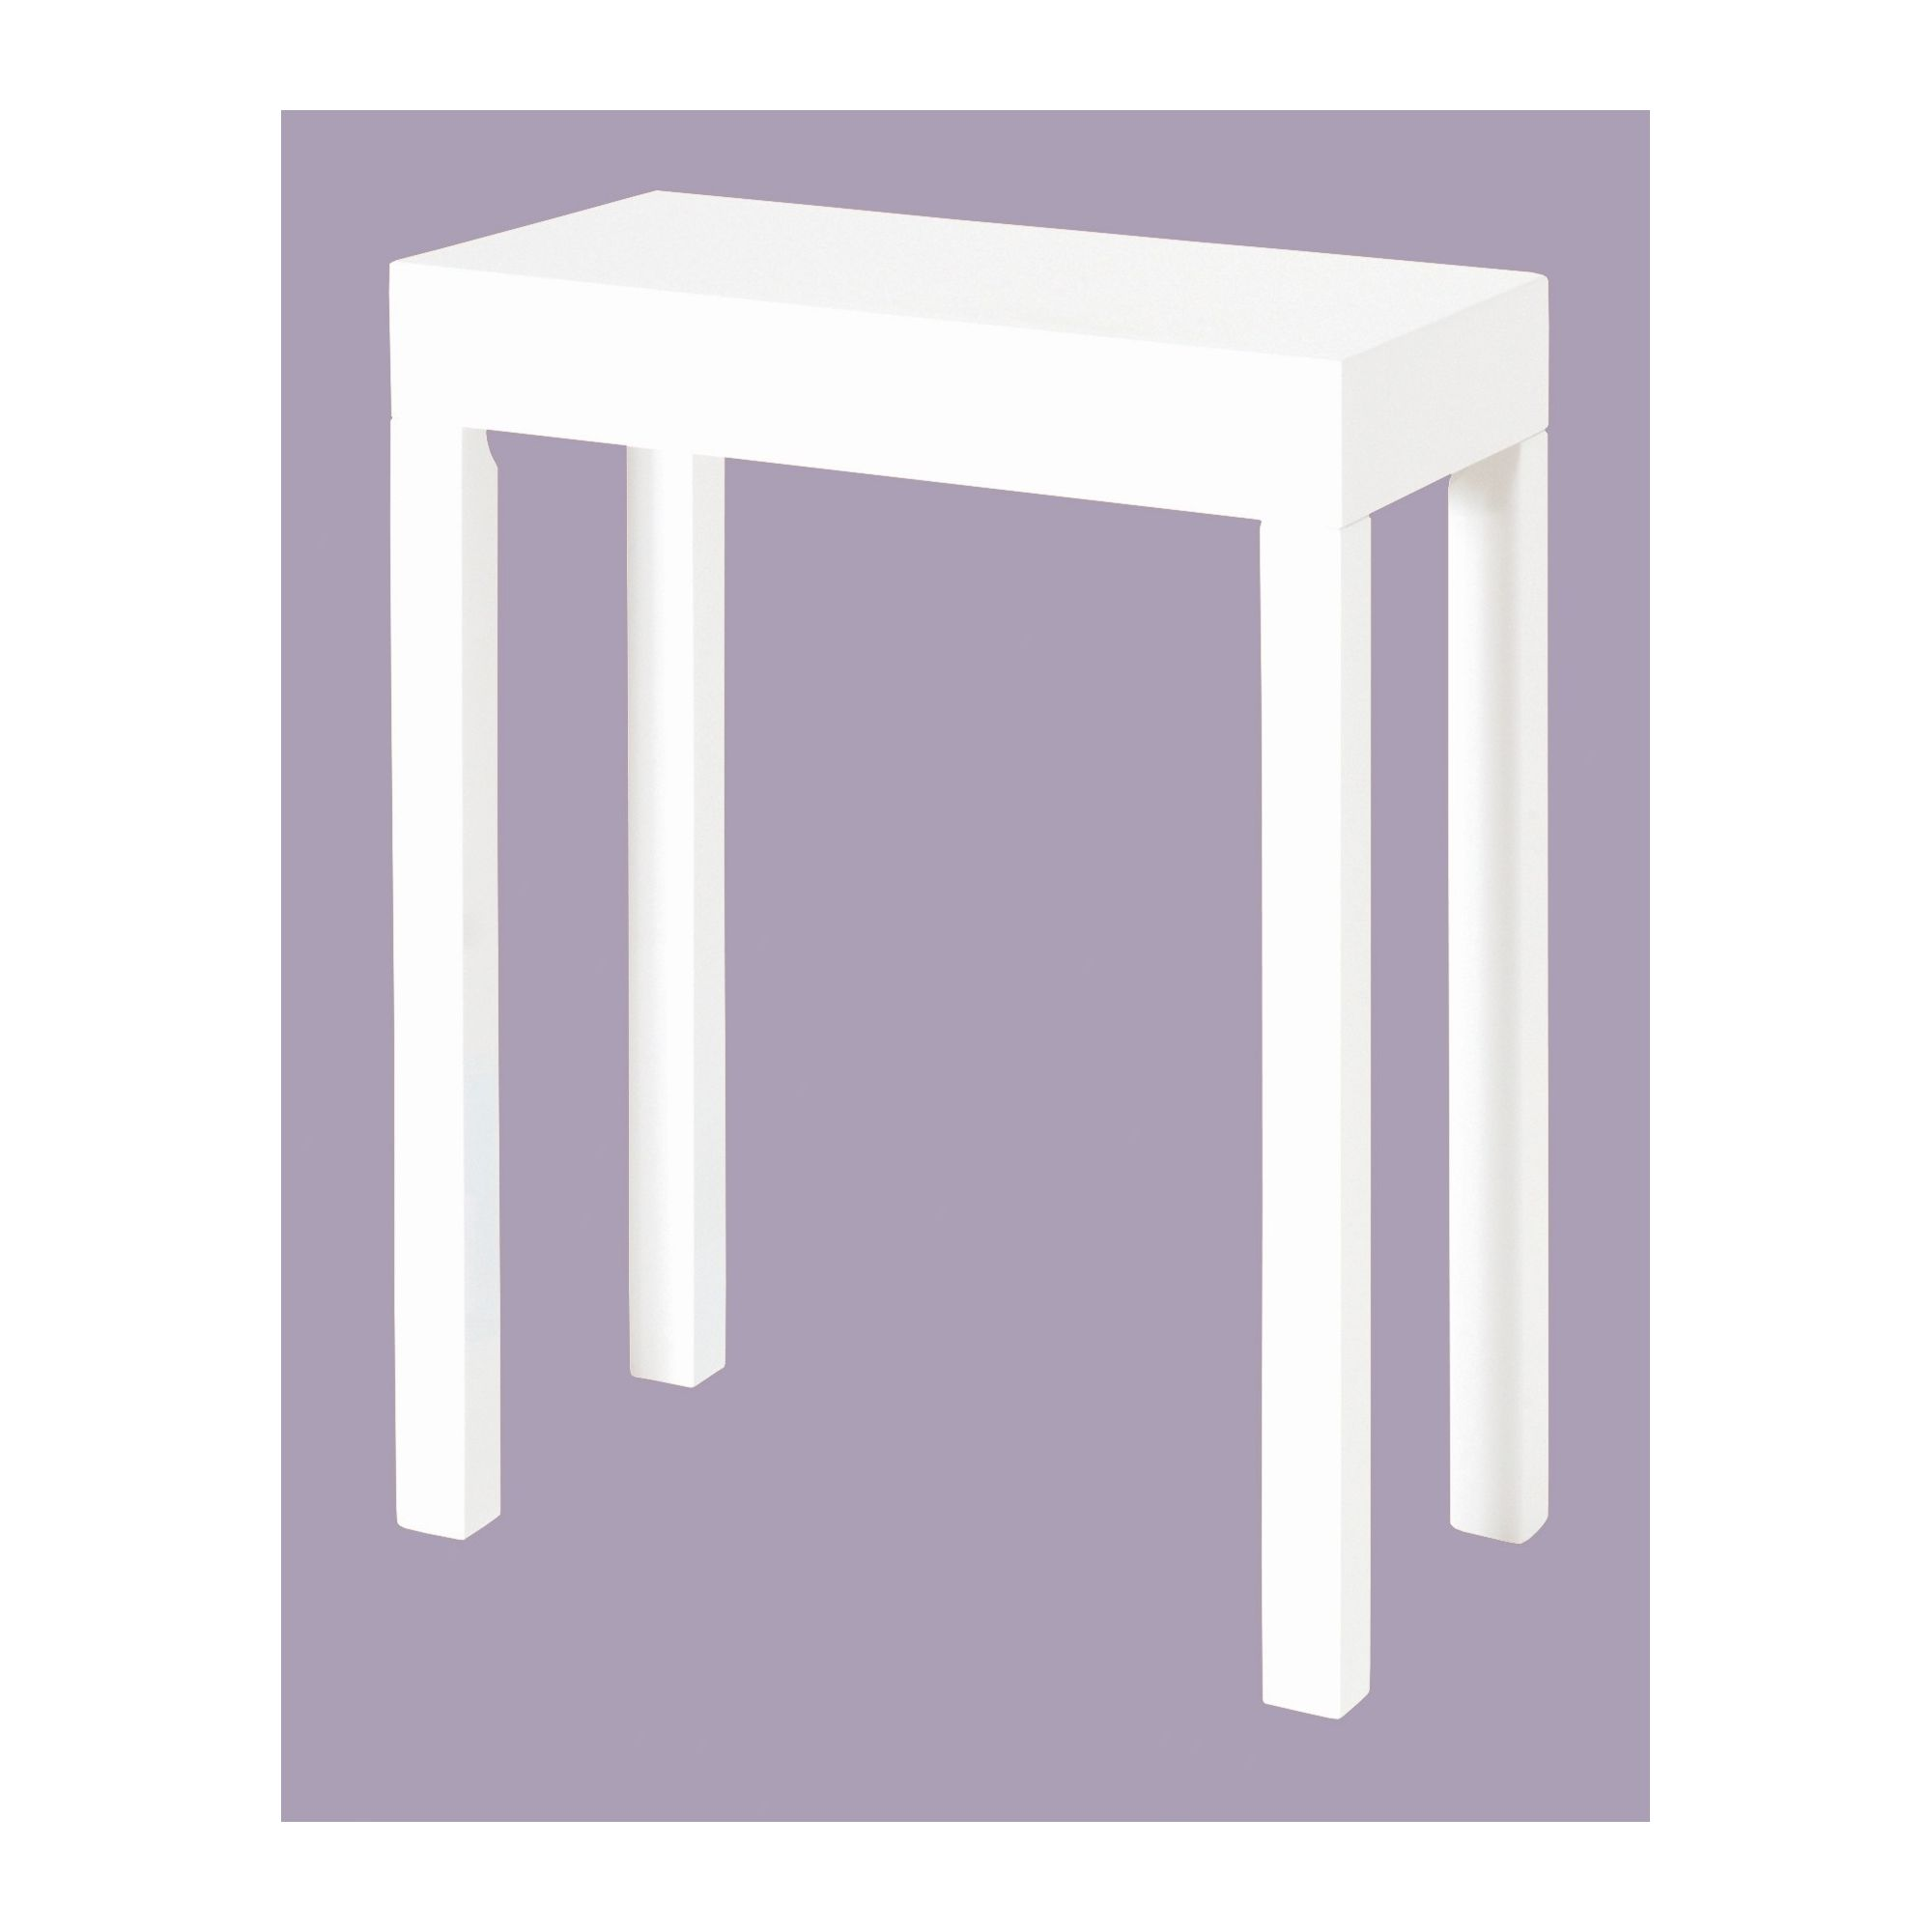 Urbane Designs Linea 68cm Side Table / Lamp Table in White